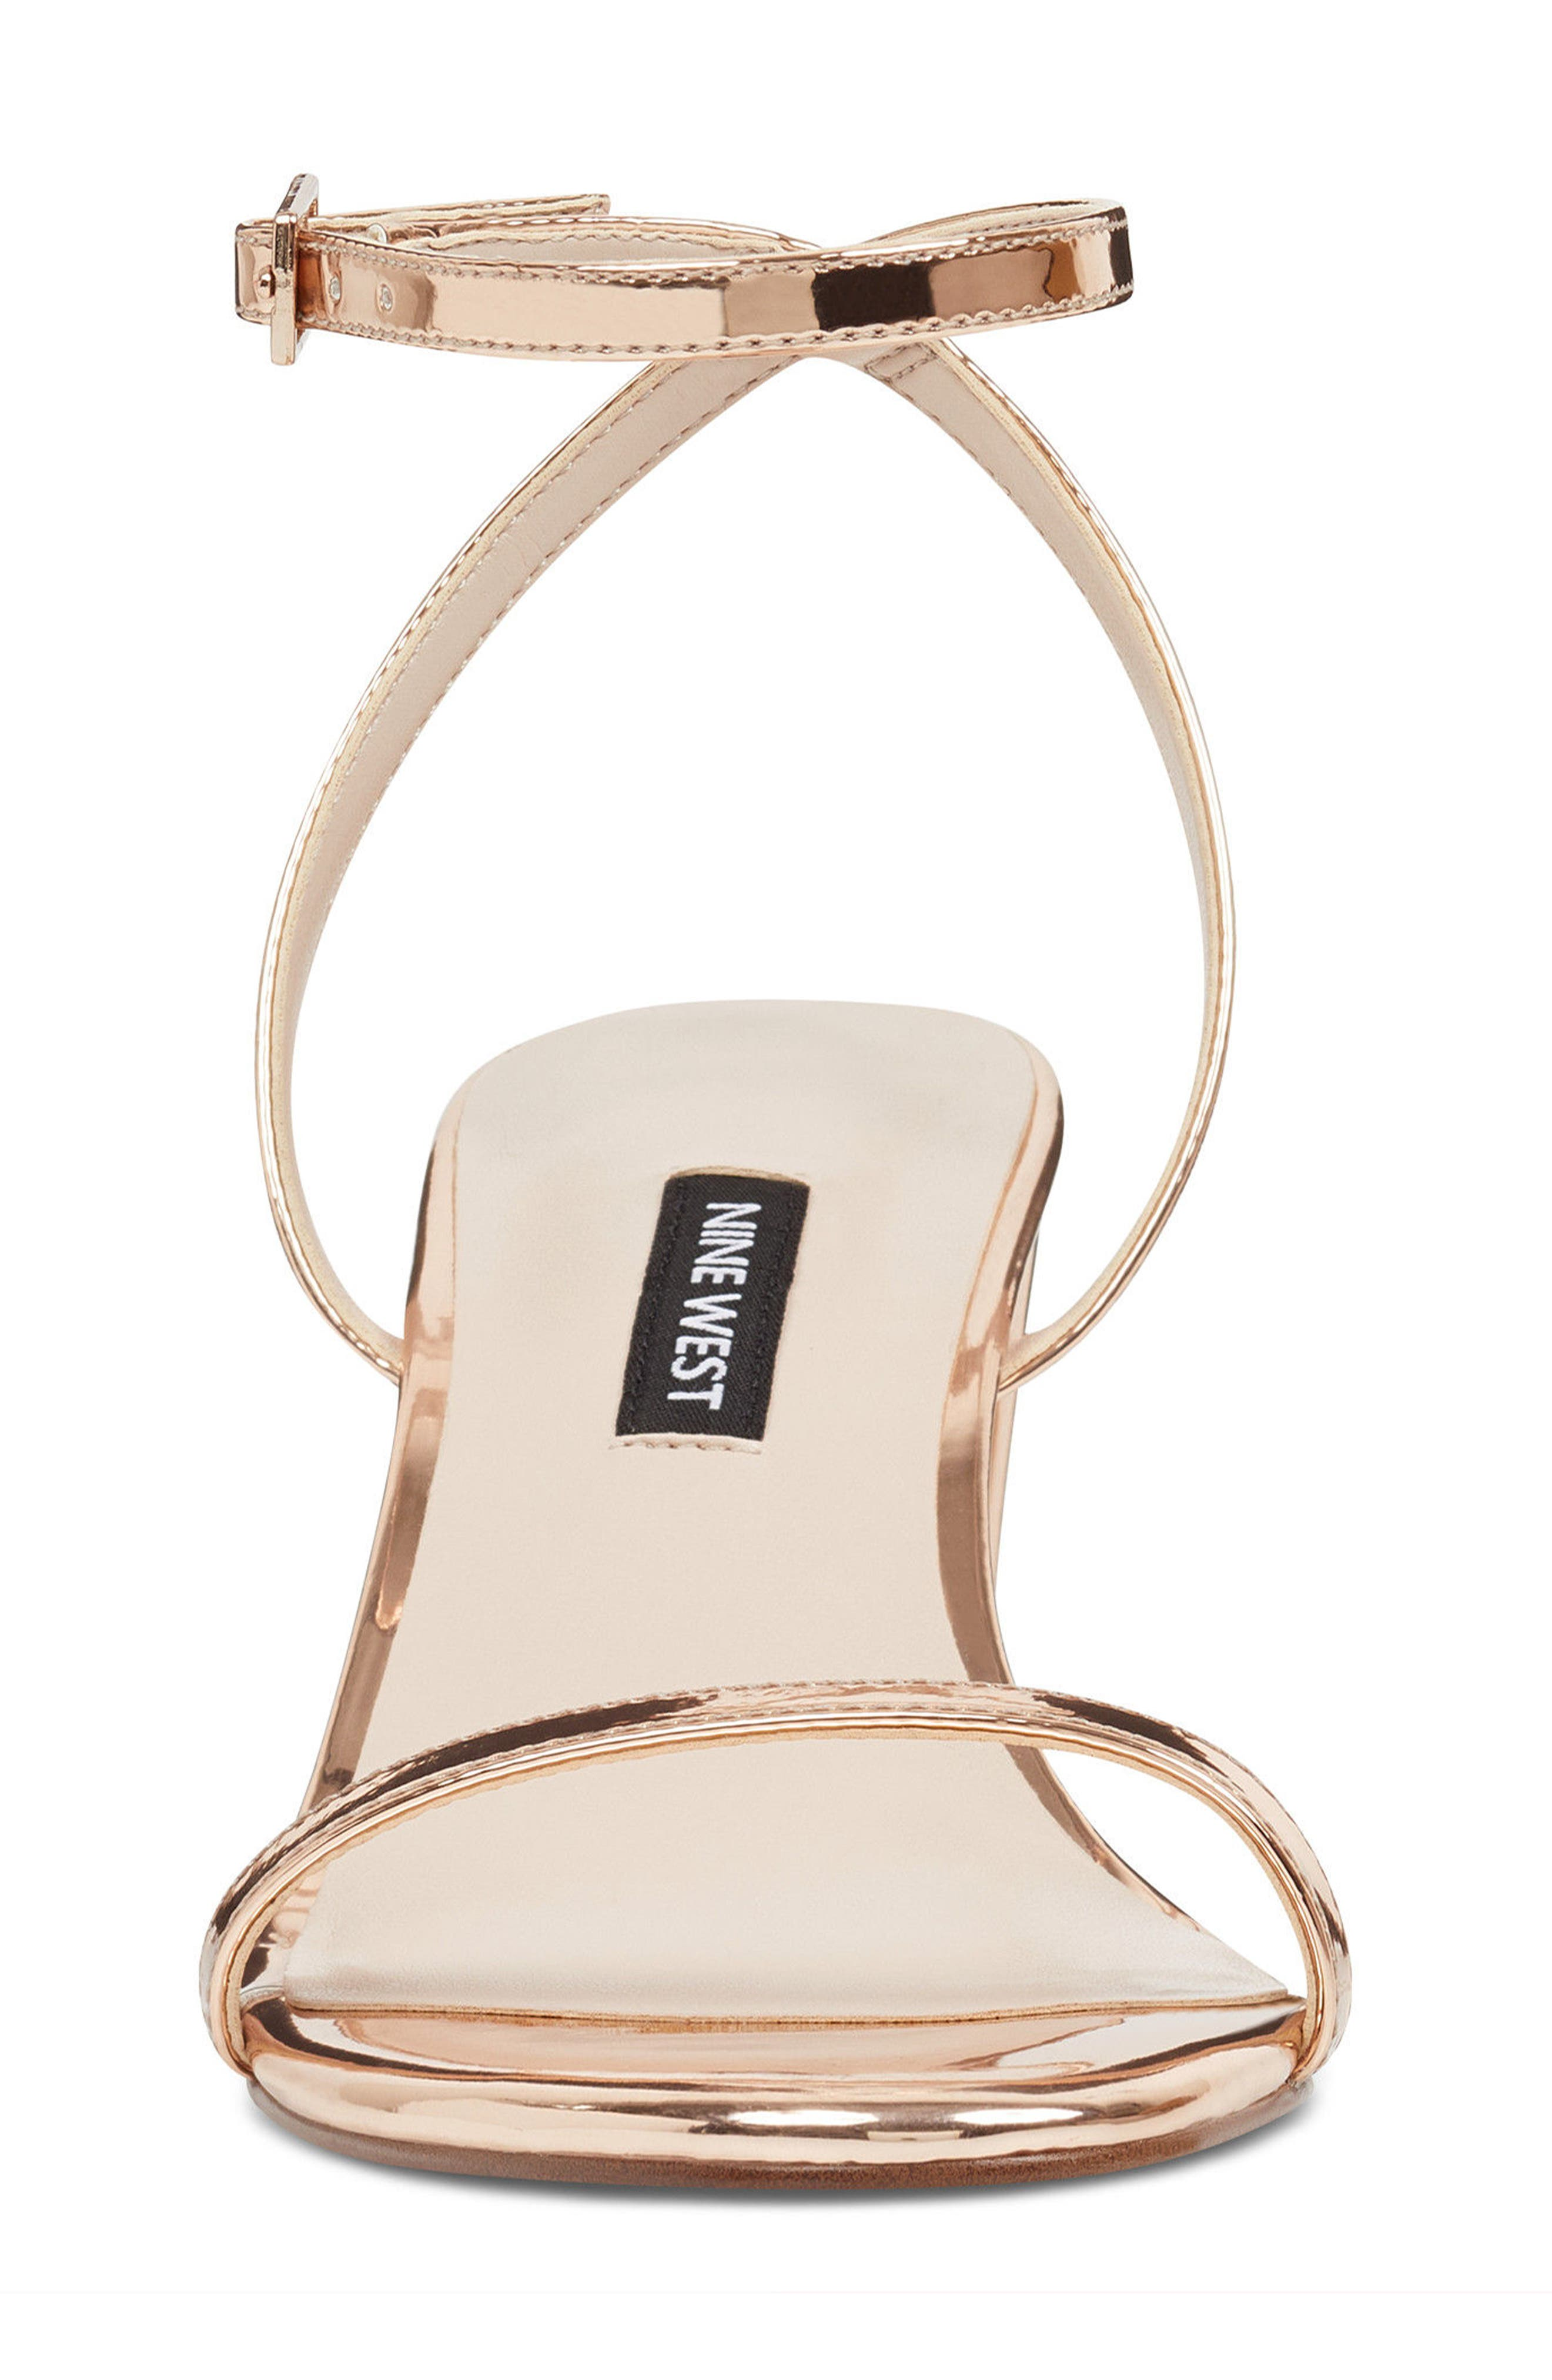 Provein Strappy Sandal,                             Alternate thumbnail 4, color,                             Pink Faux Leather